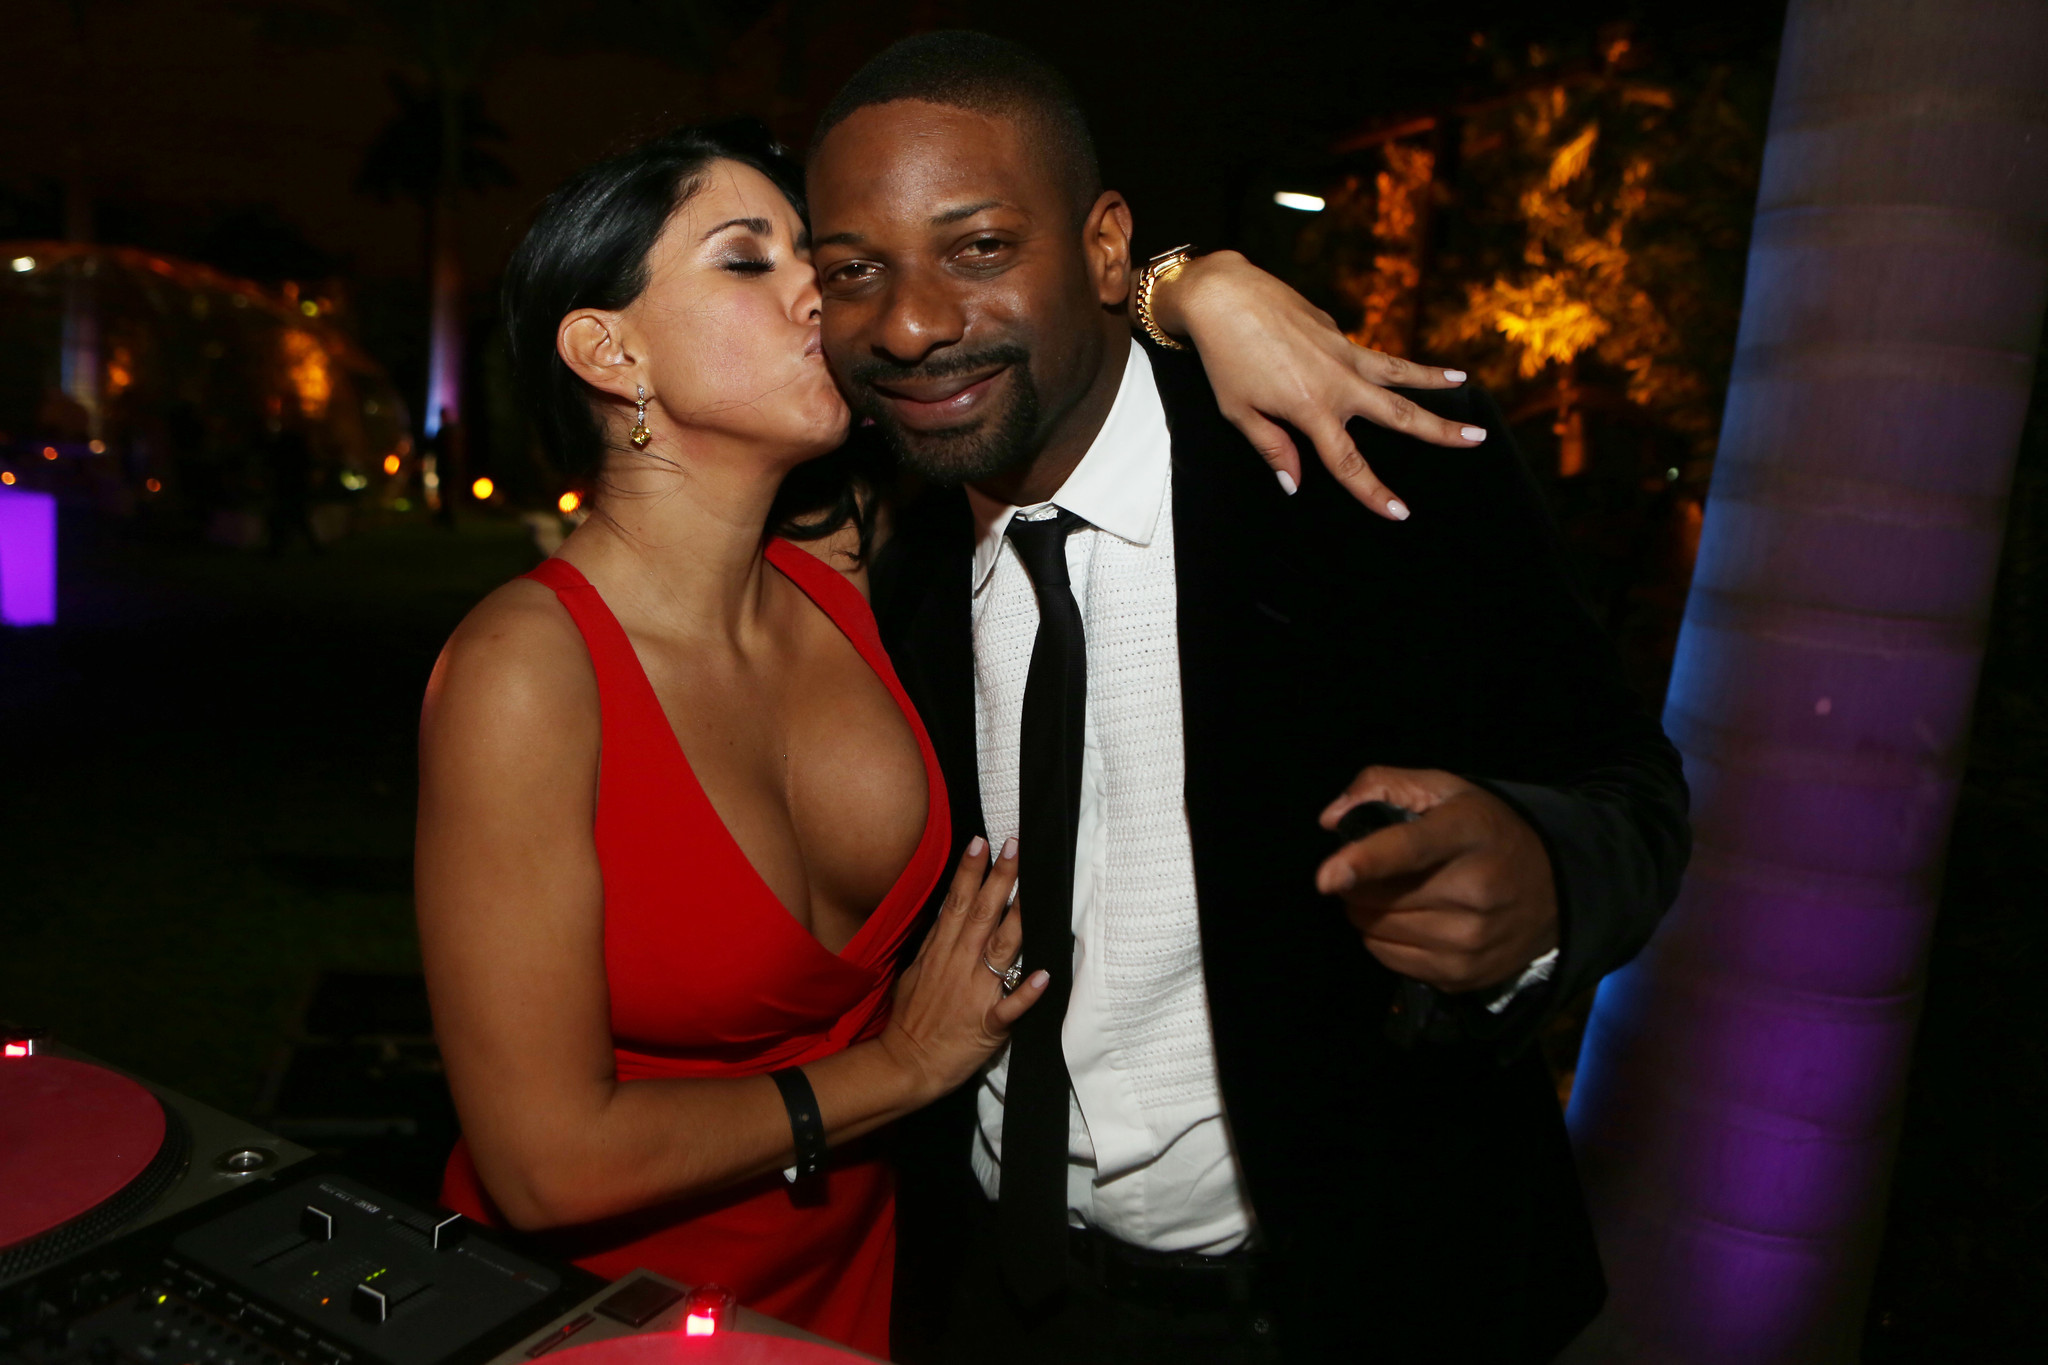 Society Scene photos - DJ Irie and friend